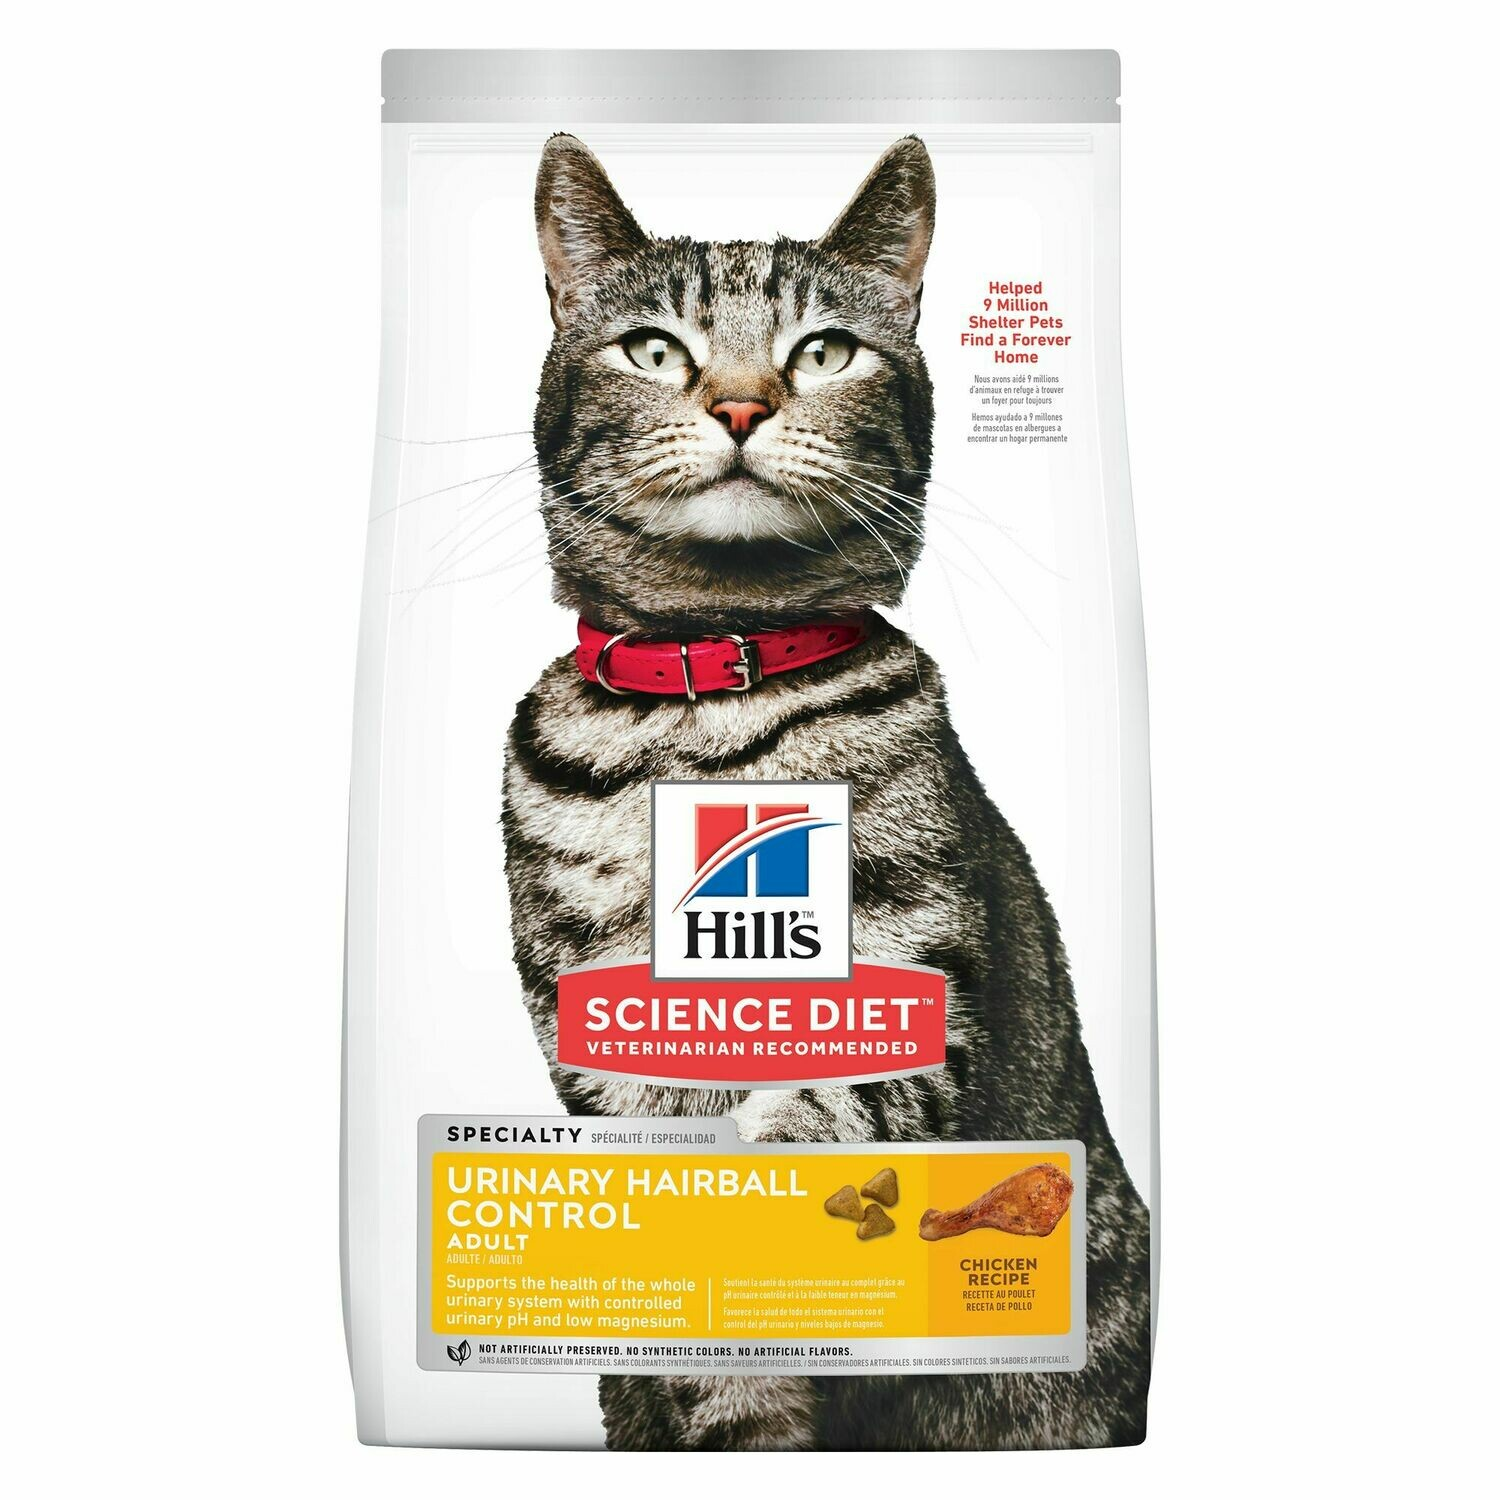 HILL'S SCIENCE DIET CAT - ADULT URINARY HARIBALL CONTROL 15LB